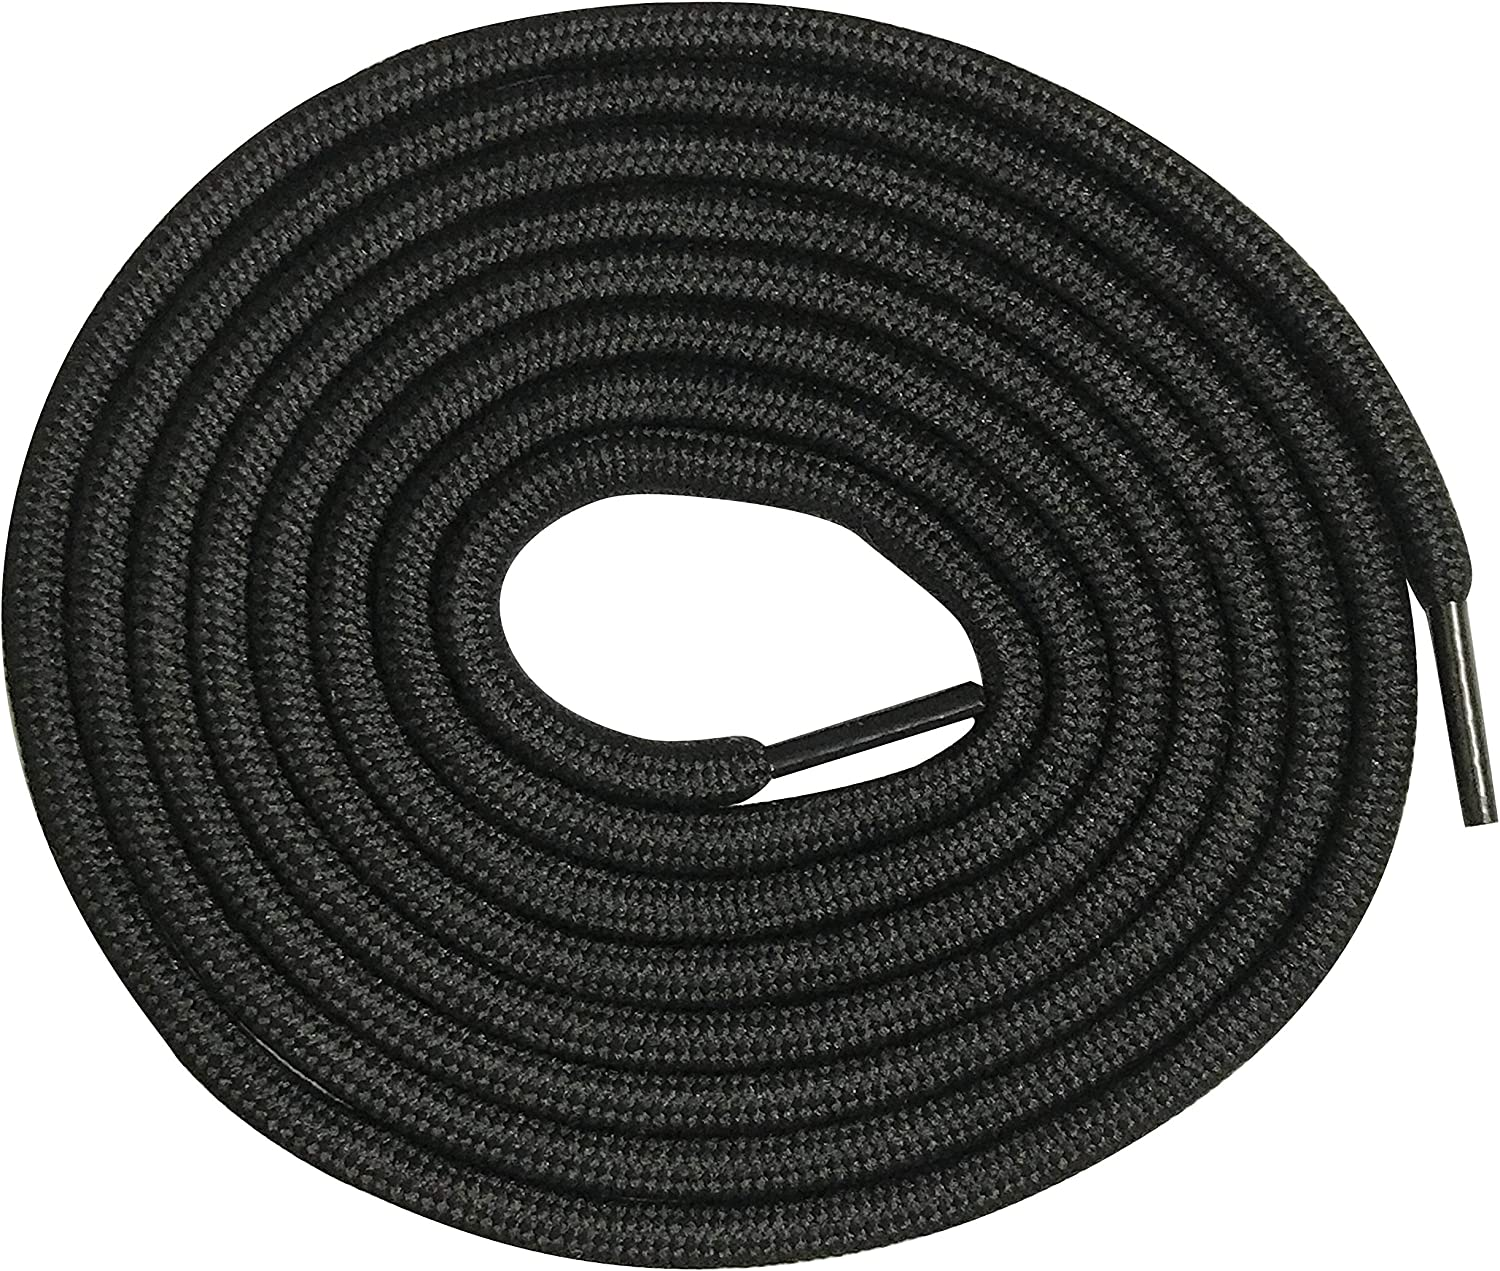 6 Pairs 5MM Thick Heavy Duty Shoelaces Round Max Recommended 43% OFF Boot Laces Durable